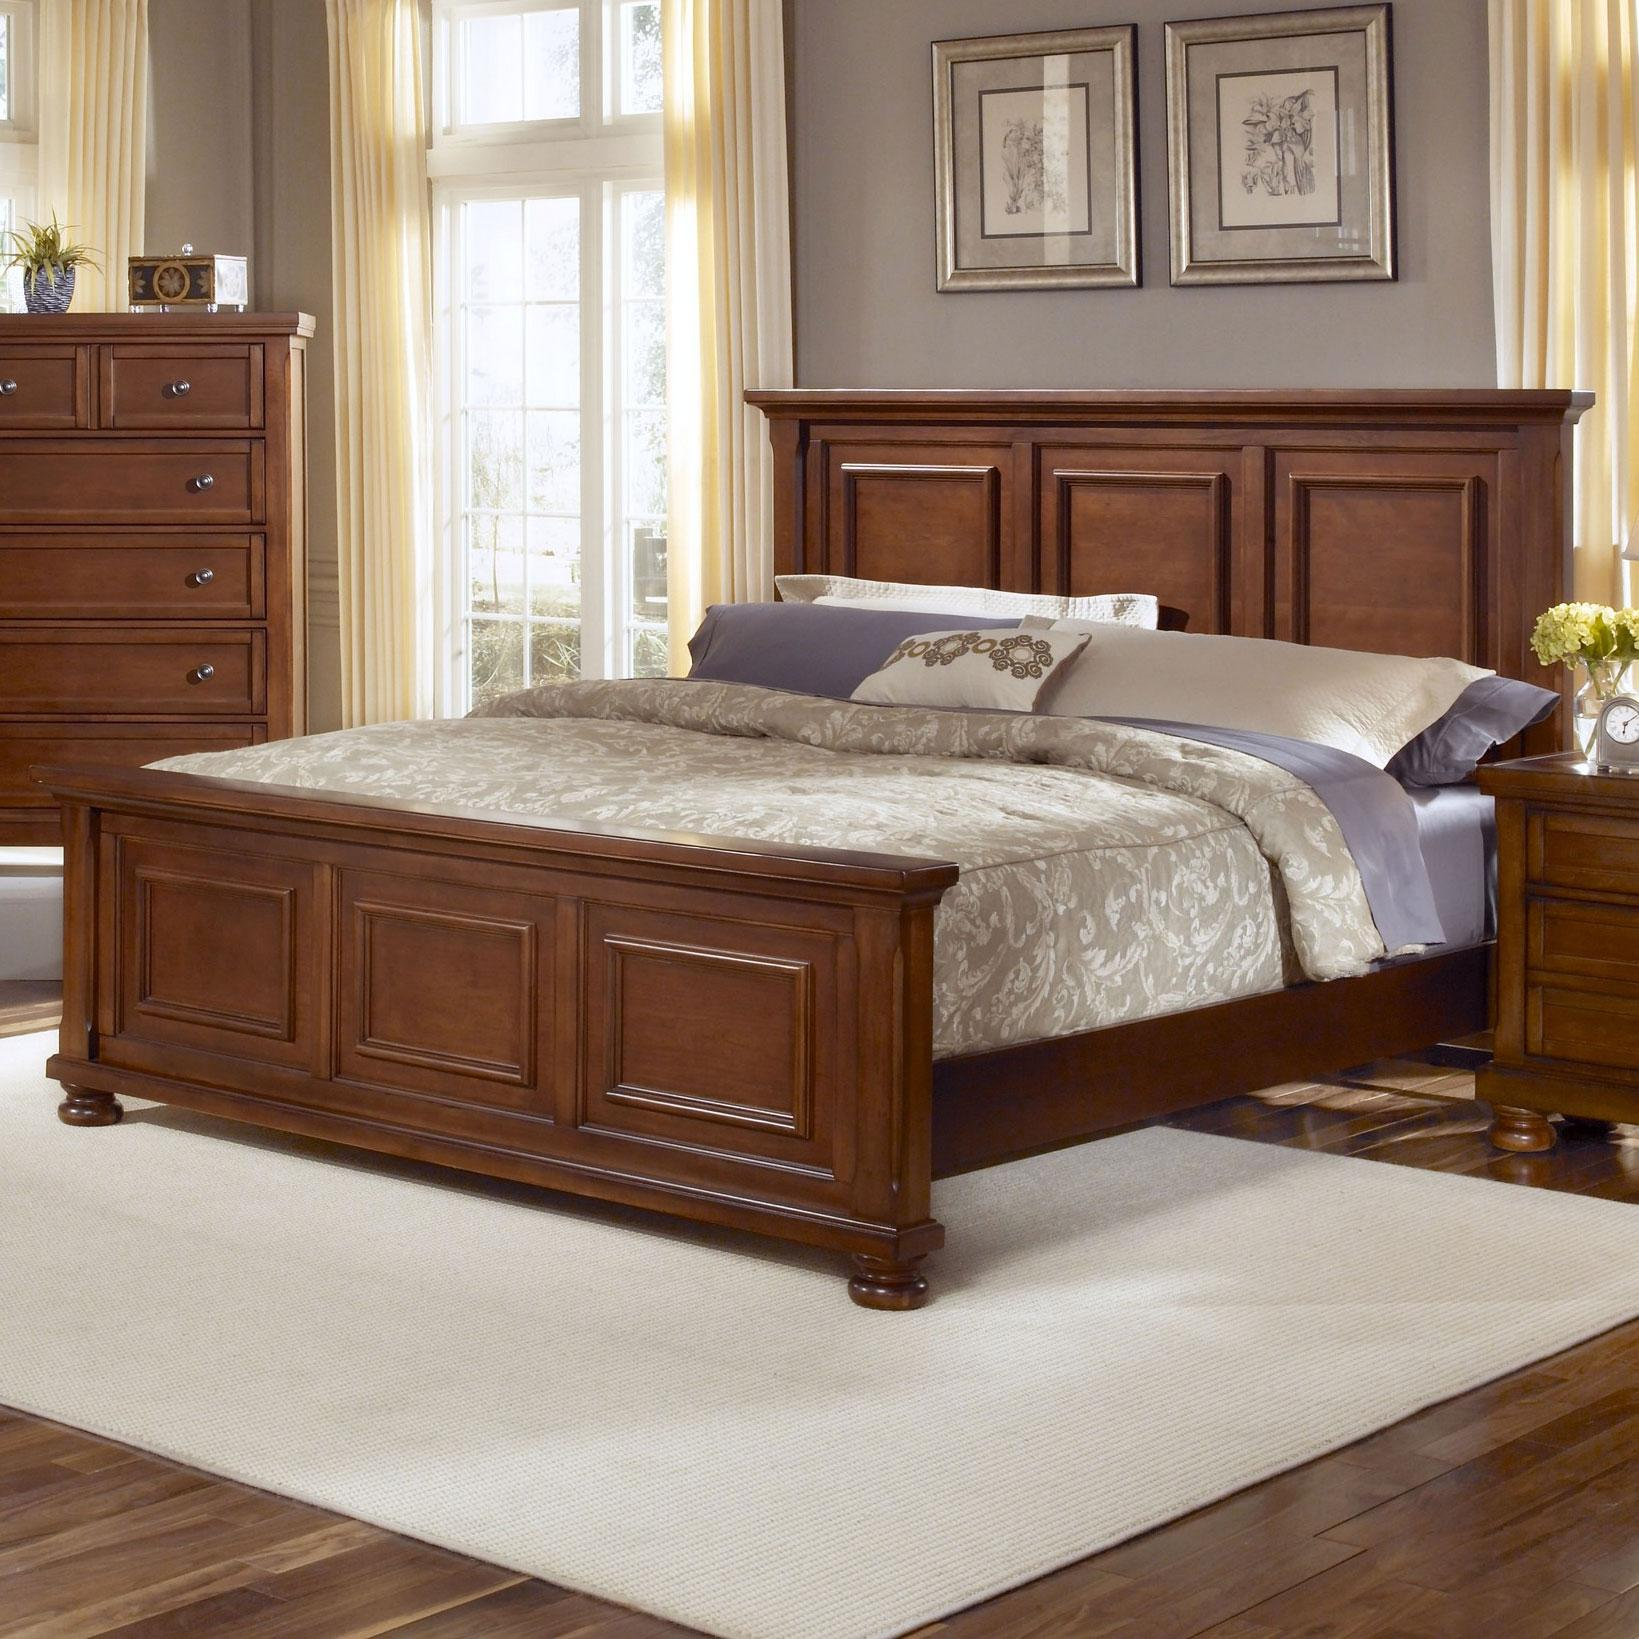 Vaughan Bassett Reflections California King Mansion Bed - Olinde\'s ...